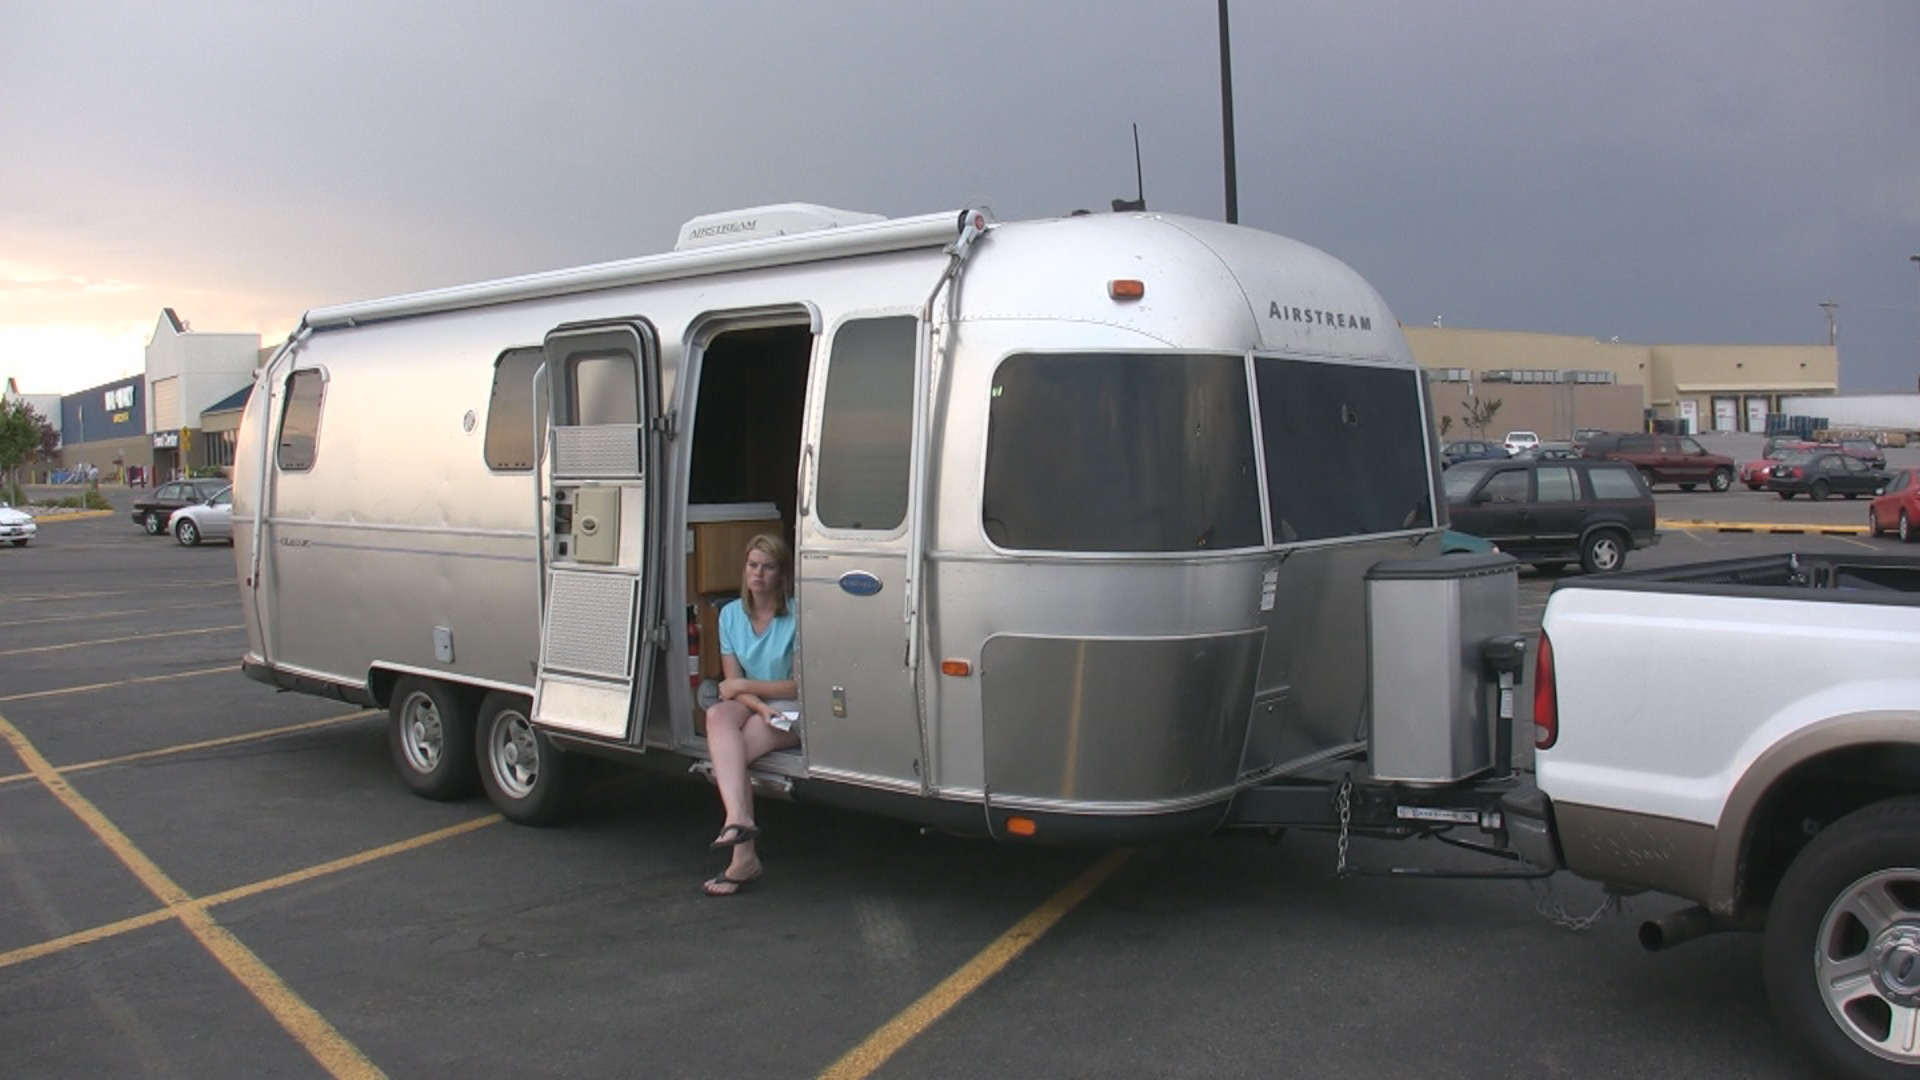 rv hookup at walmart Camping in prescott there are no rv hookups, dump stations or shower facilities there is a 14 day stay limit reservations are not accepted.